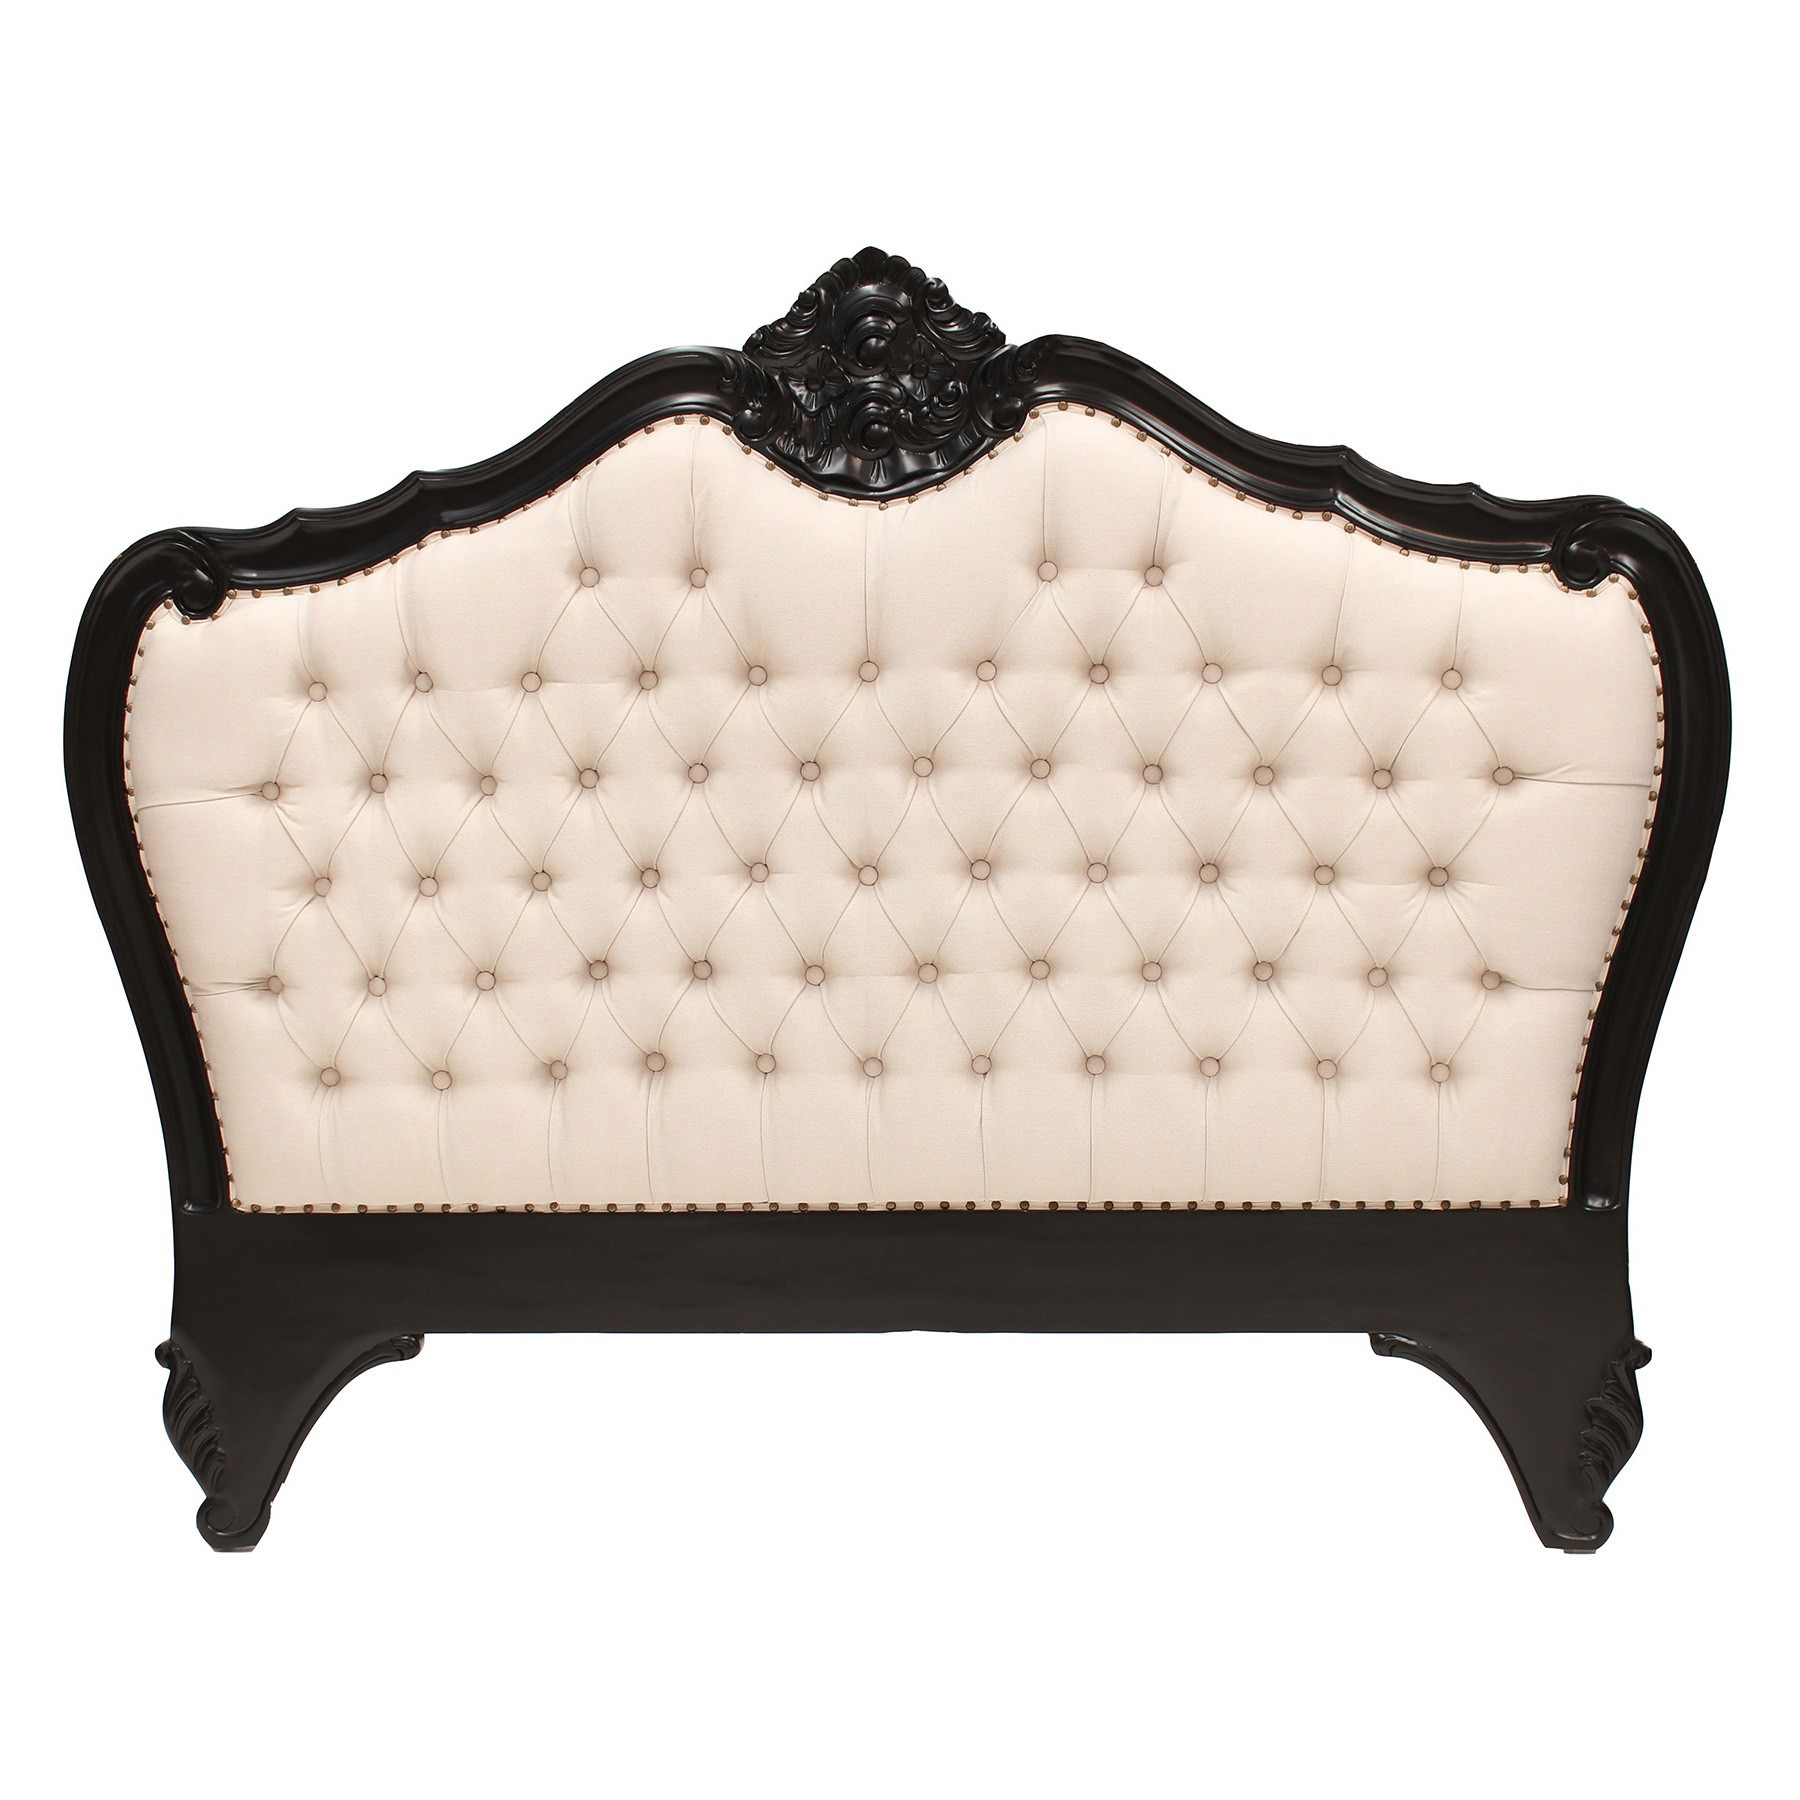 Challuy Hand Crafted Mahogany Upholstered Queen Size Bedhead, Black